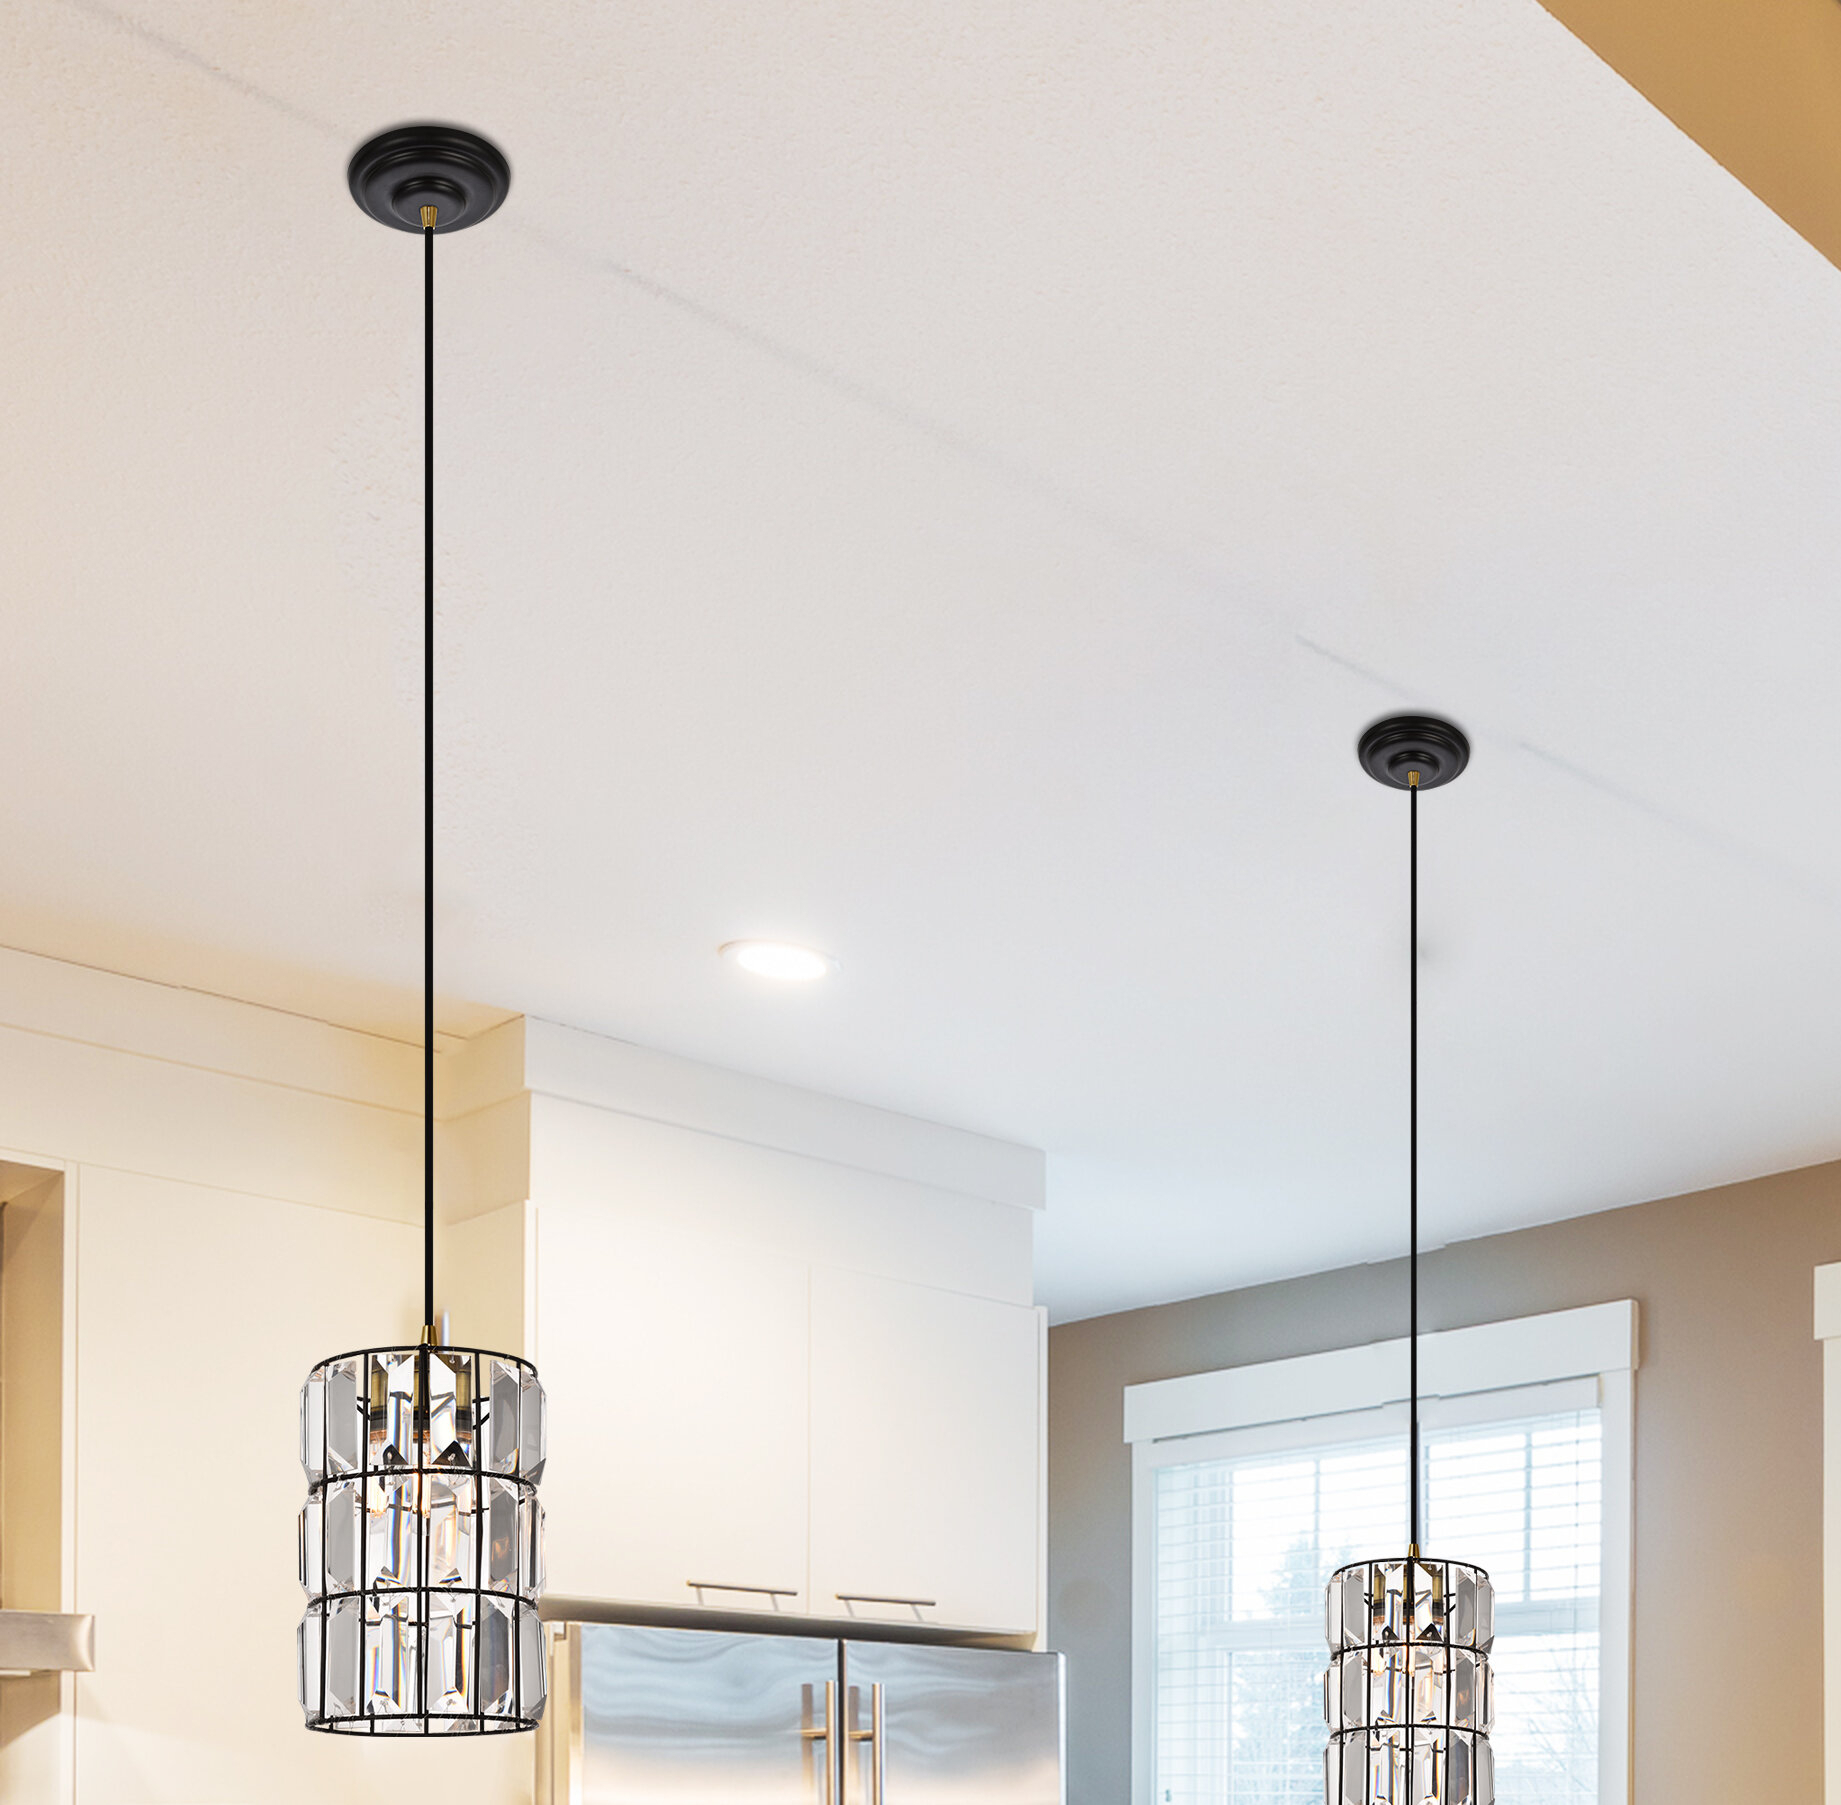 Colston 1 Light Single Cylinder Pendant With Kraker 1 Light Single Cylinder Pendants (View 2 of 30)